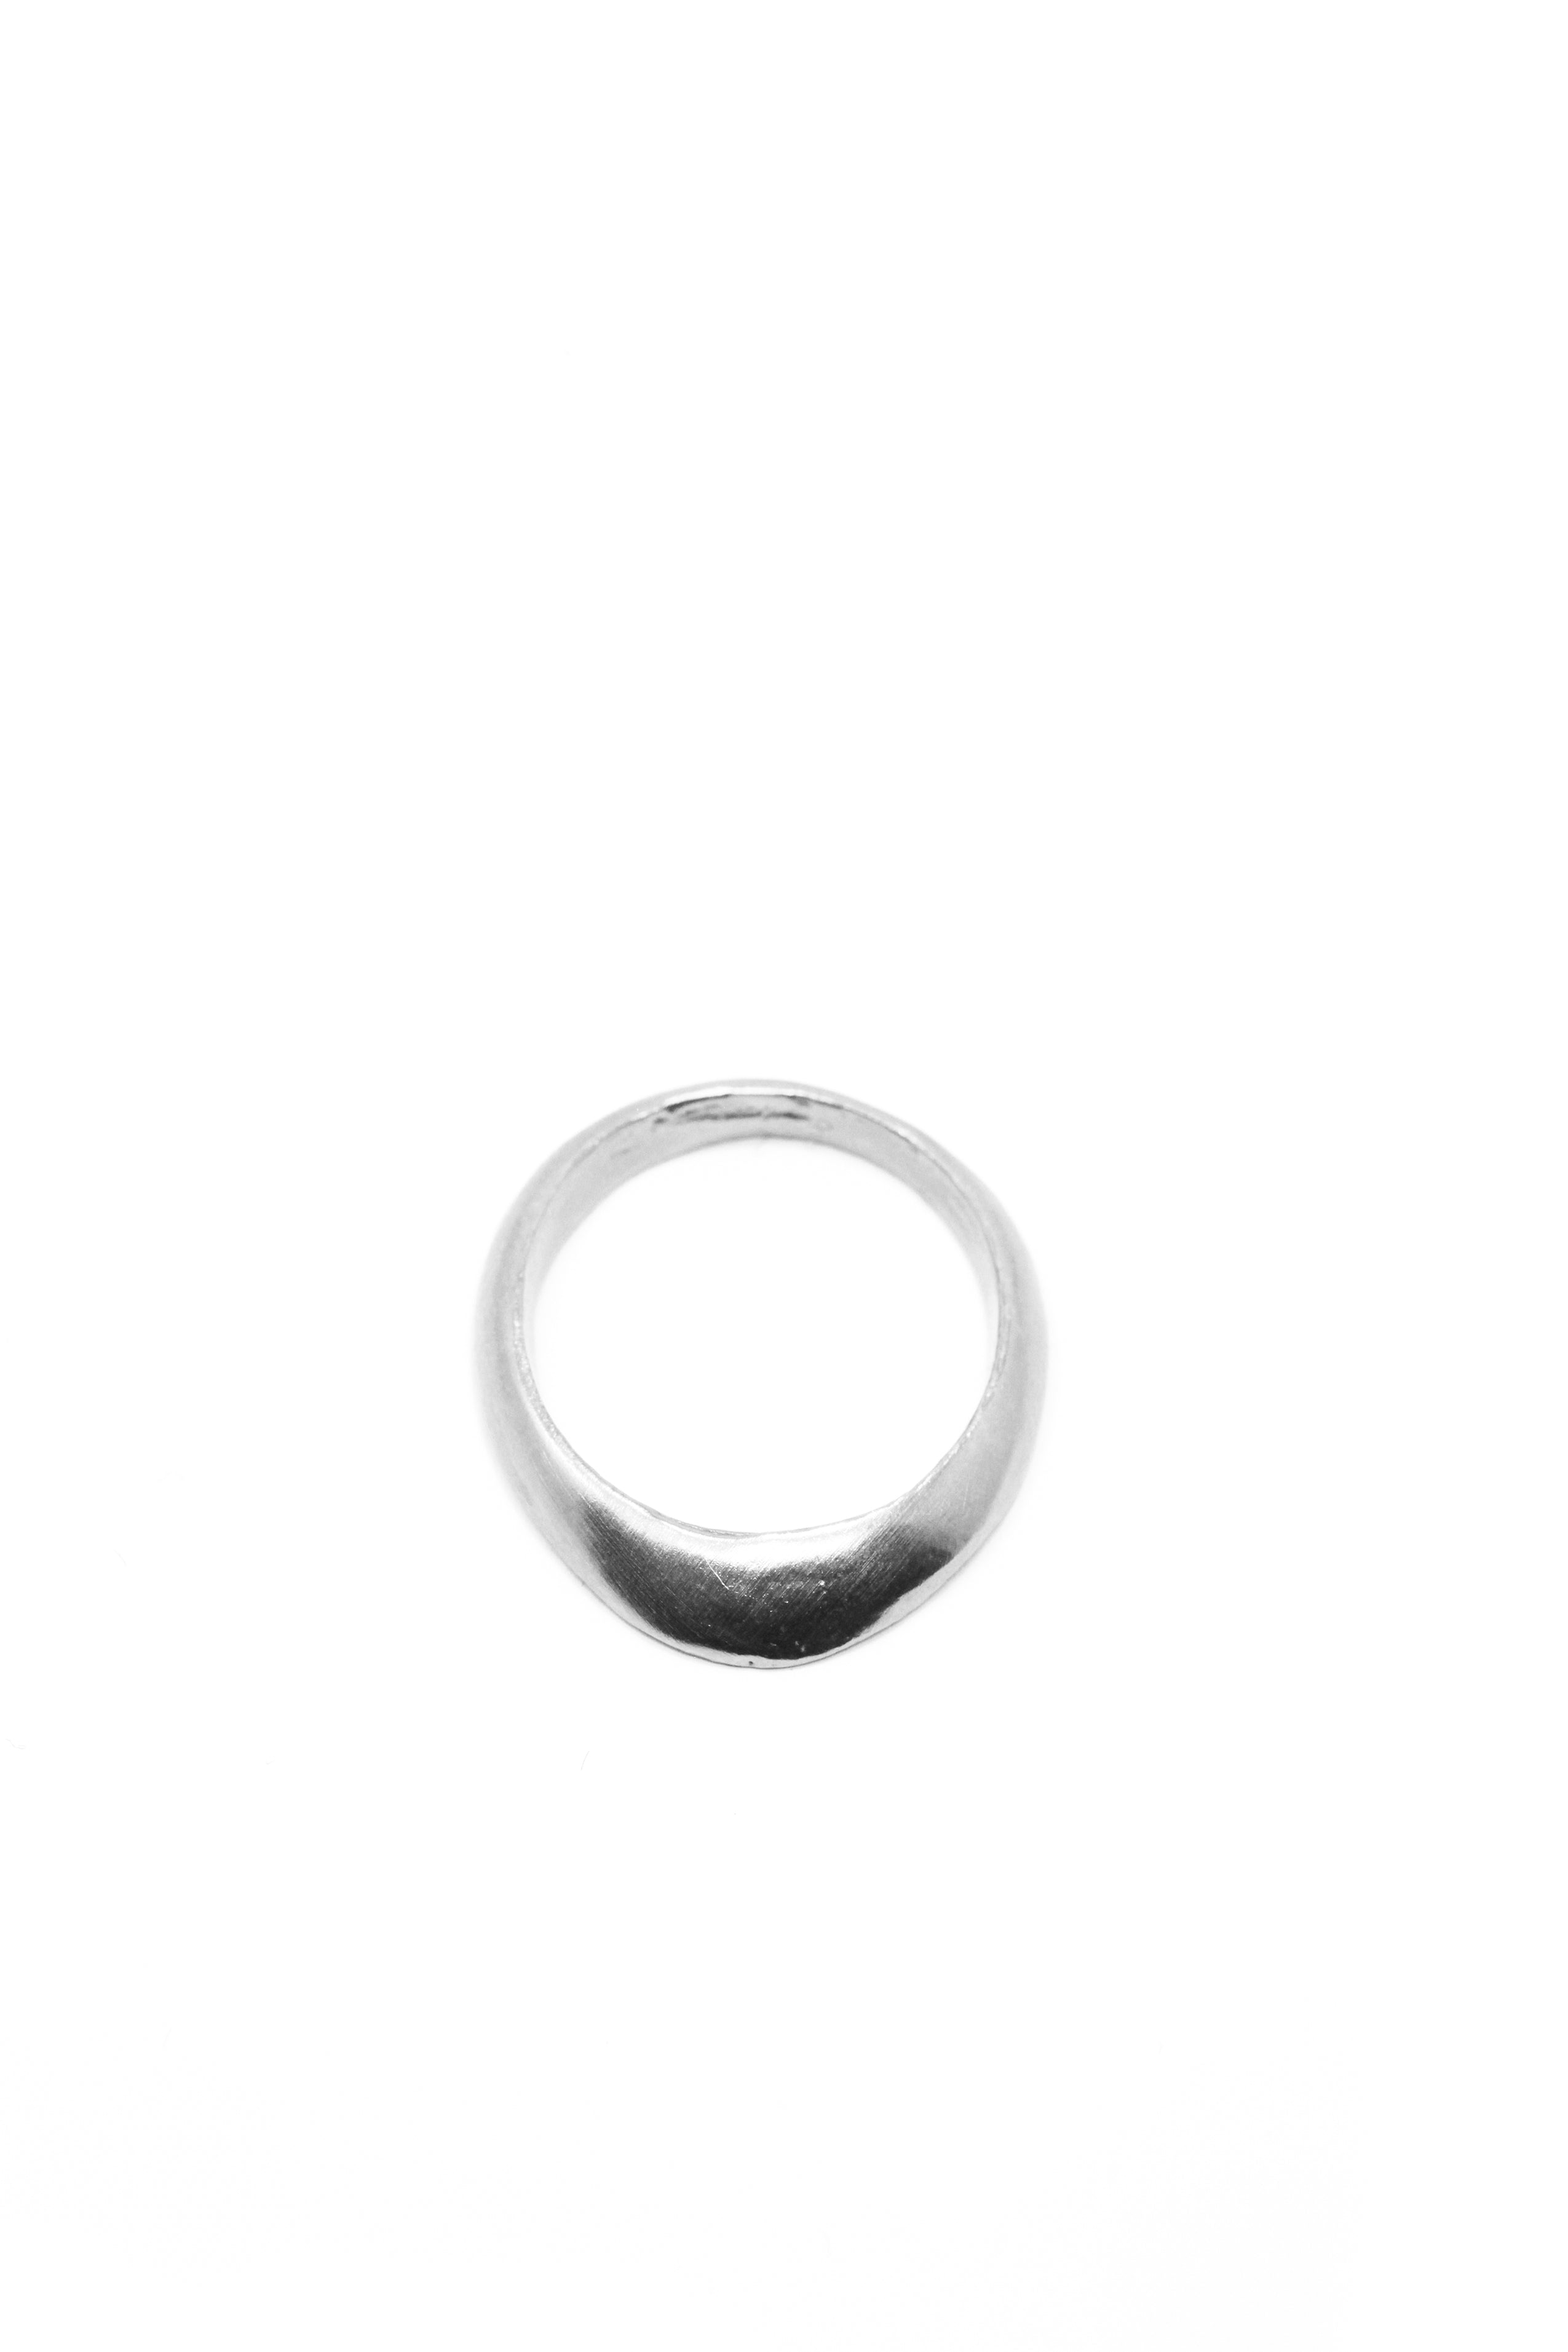 THE MOUND Ring I Sterling Silver